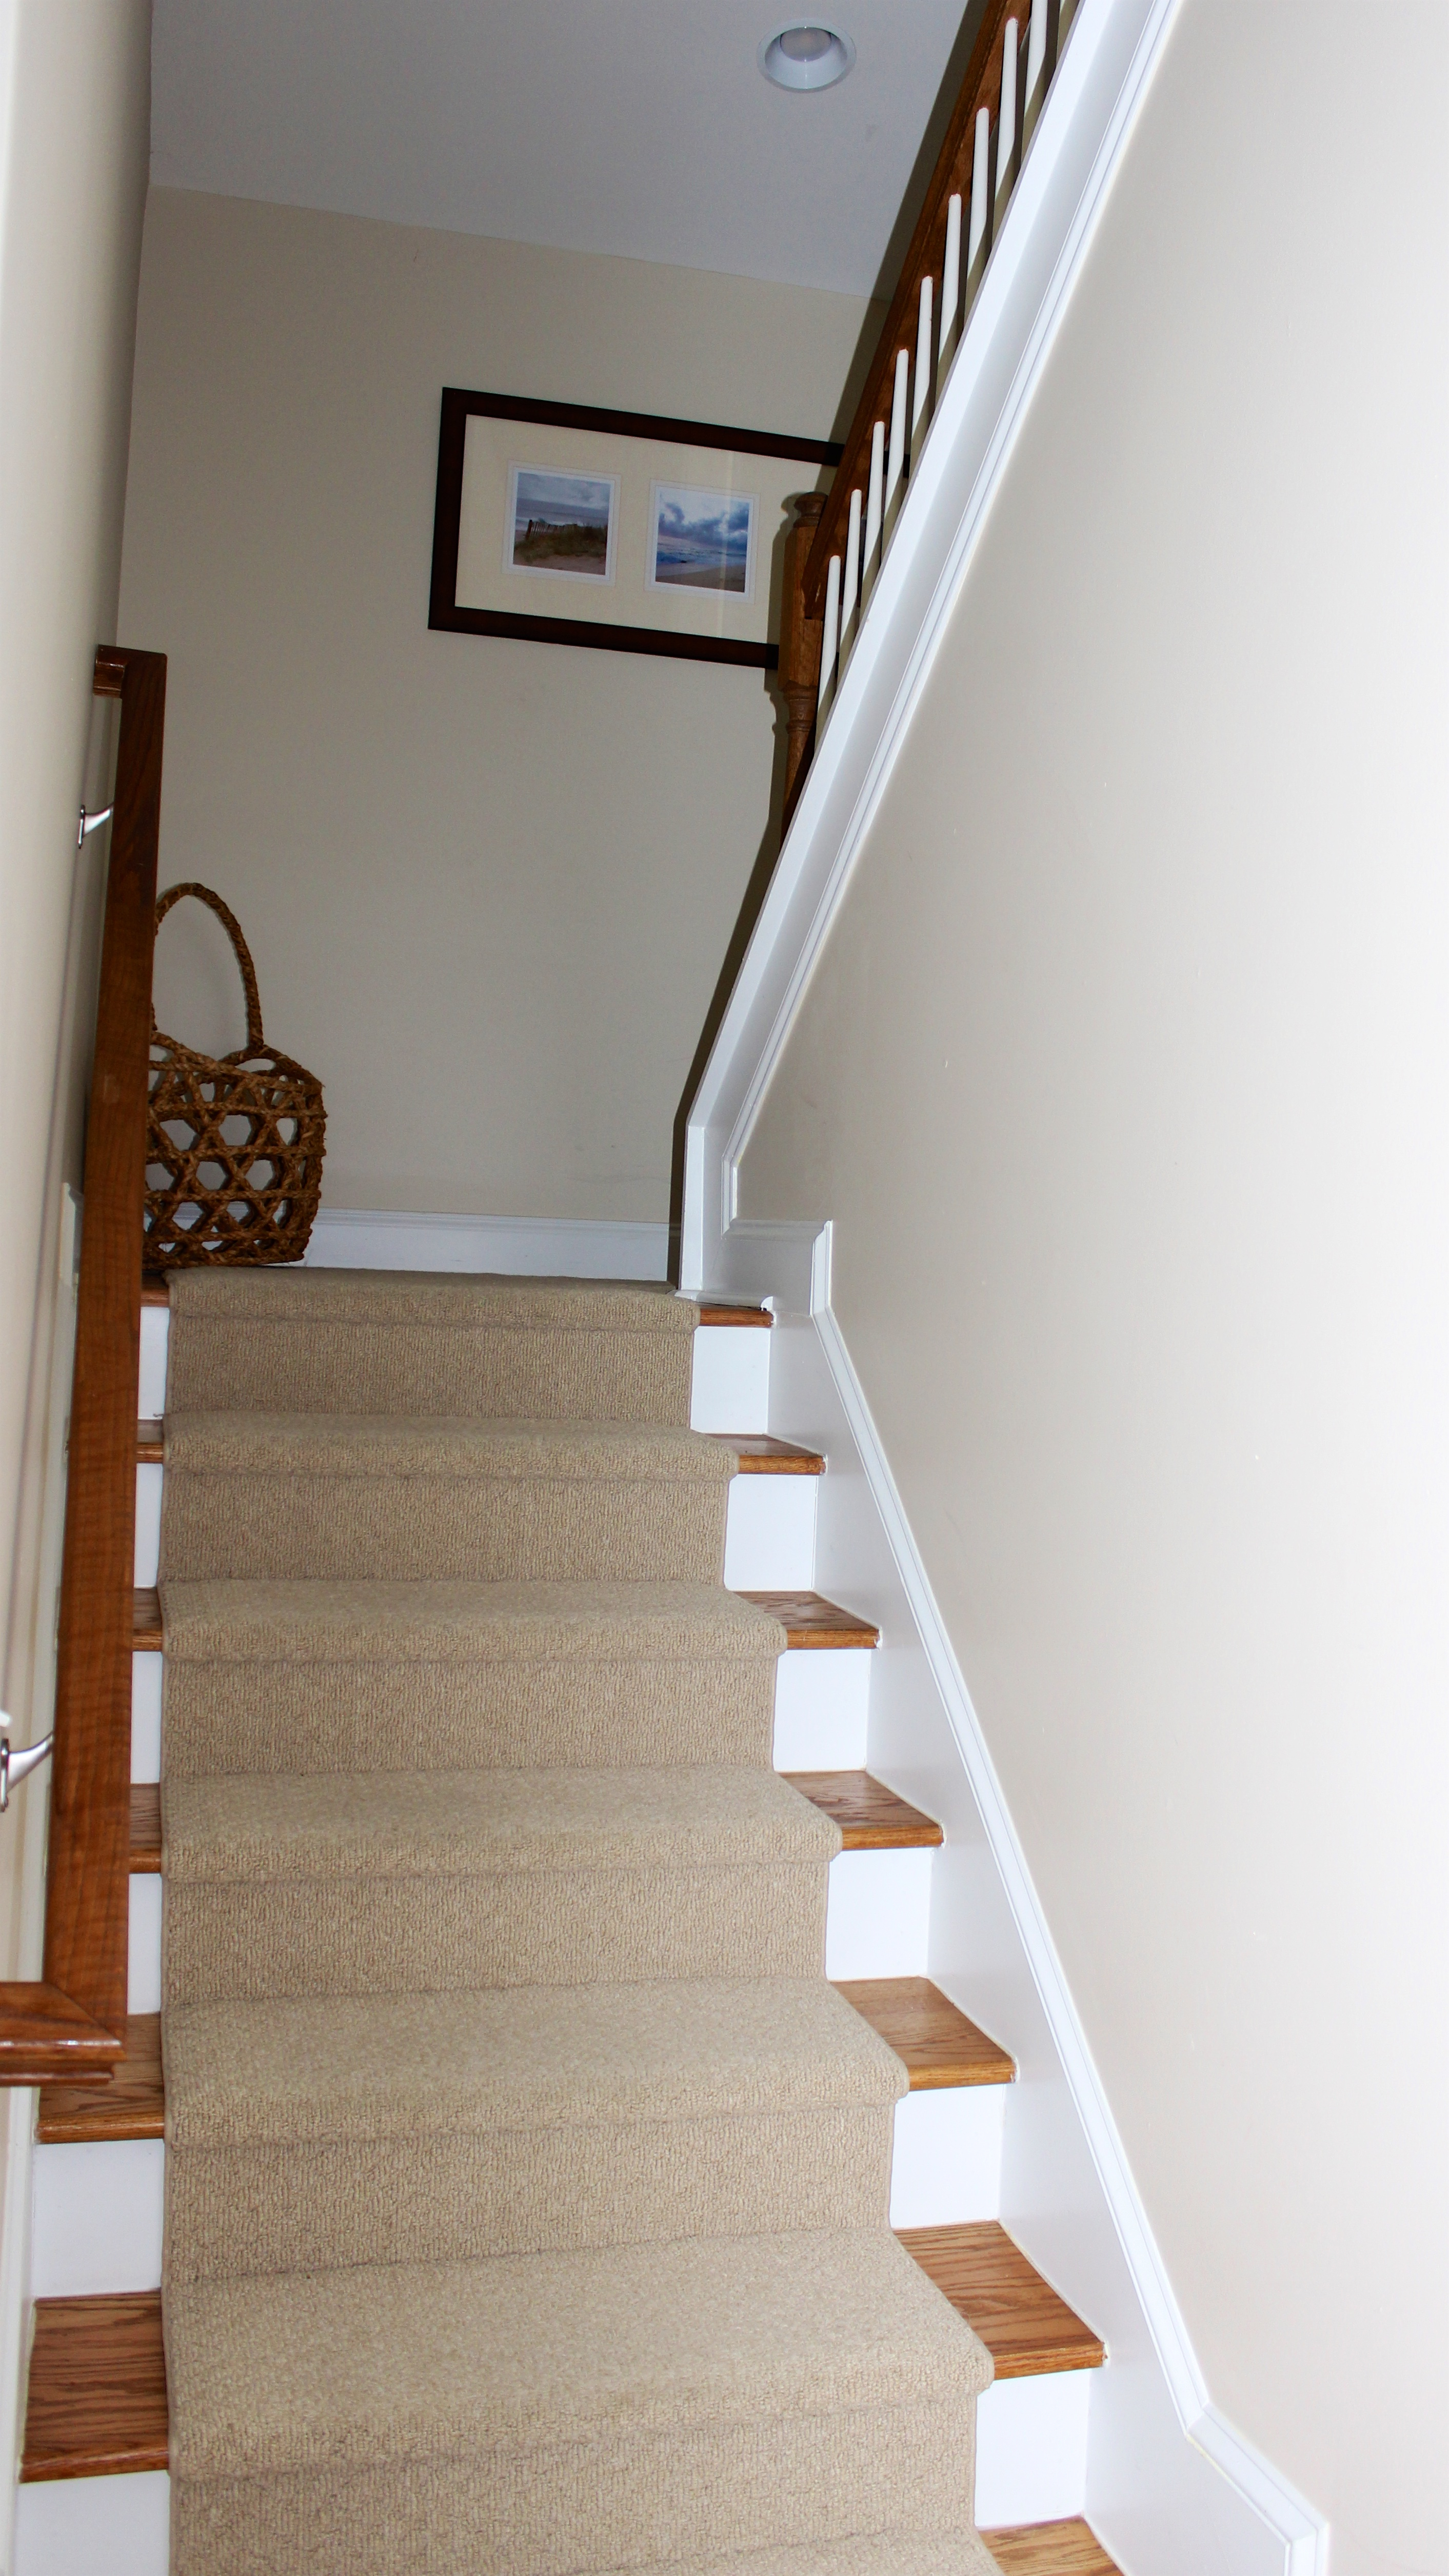 Head up the double stairway to the 2nd floor.